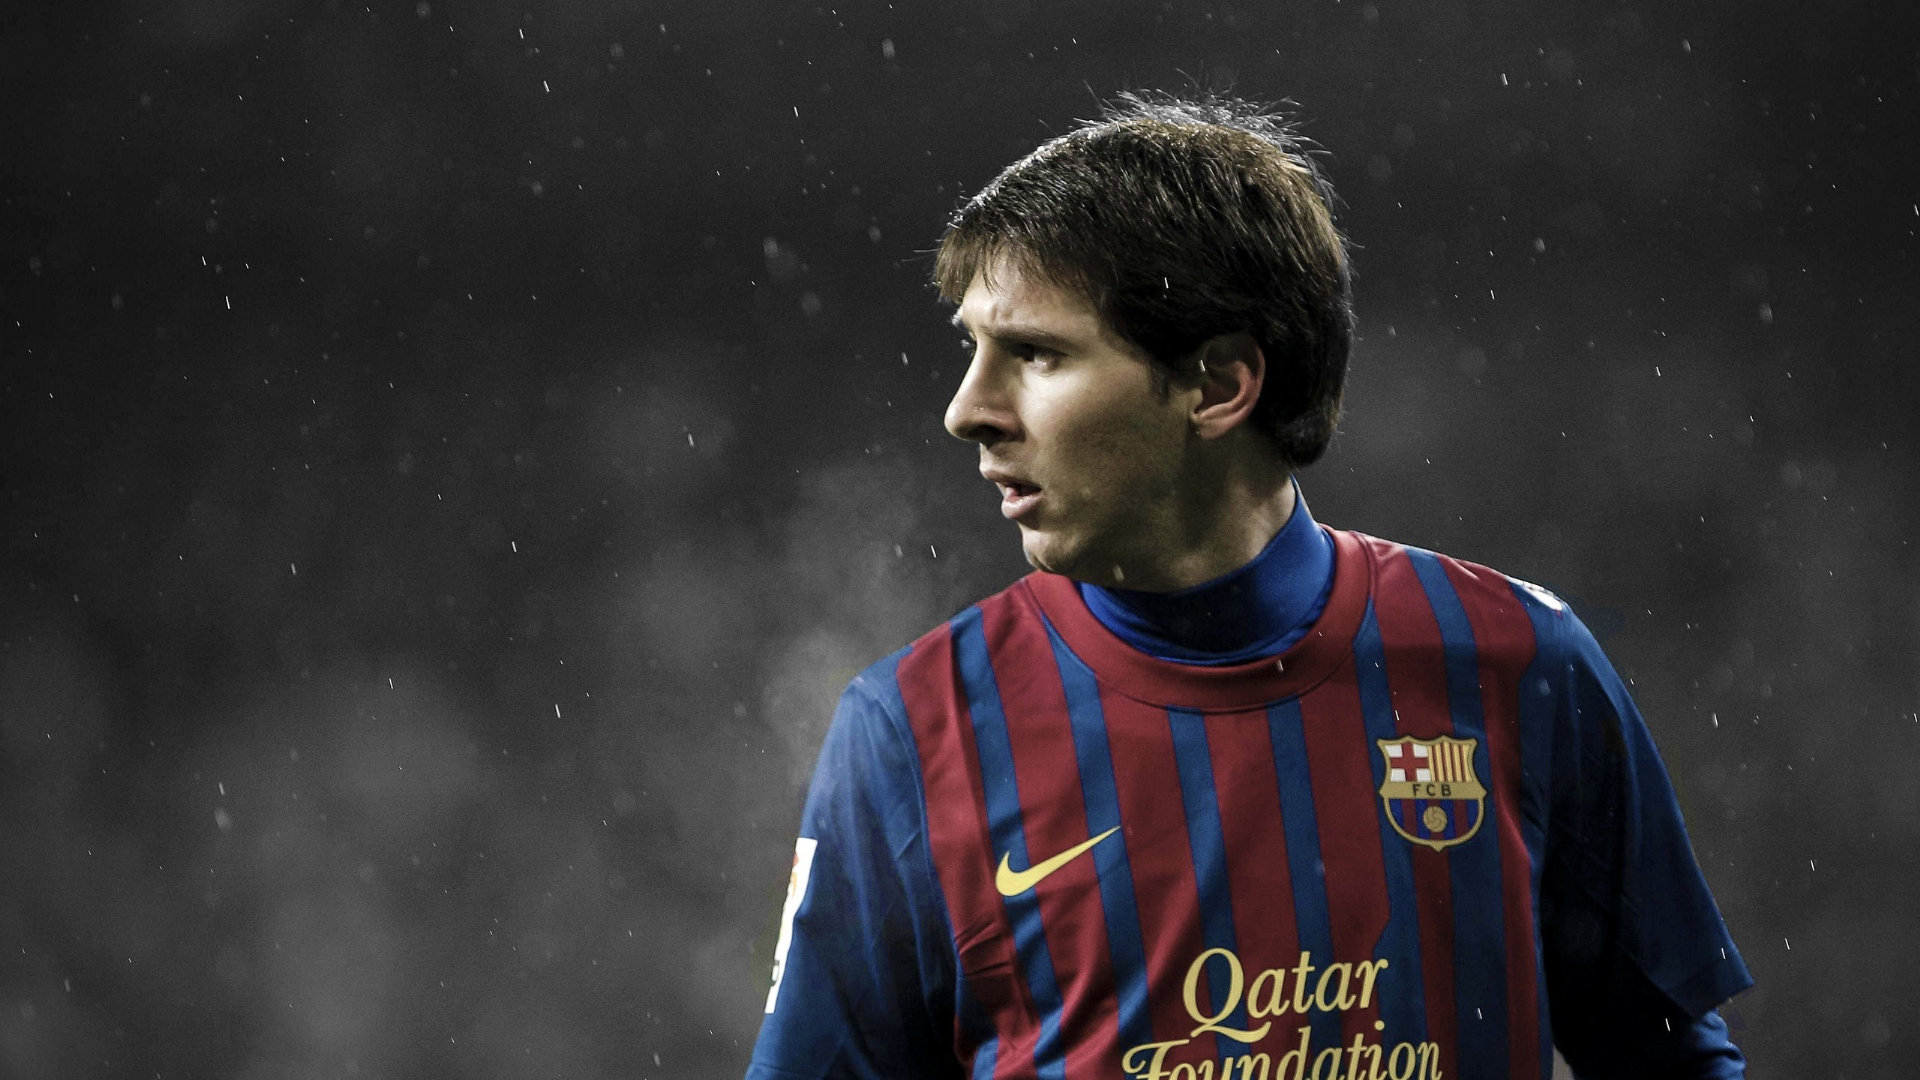 Iphone wallpaper lebron james - Lionel Messi Hd Wallpapers Free Download